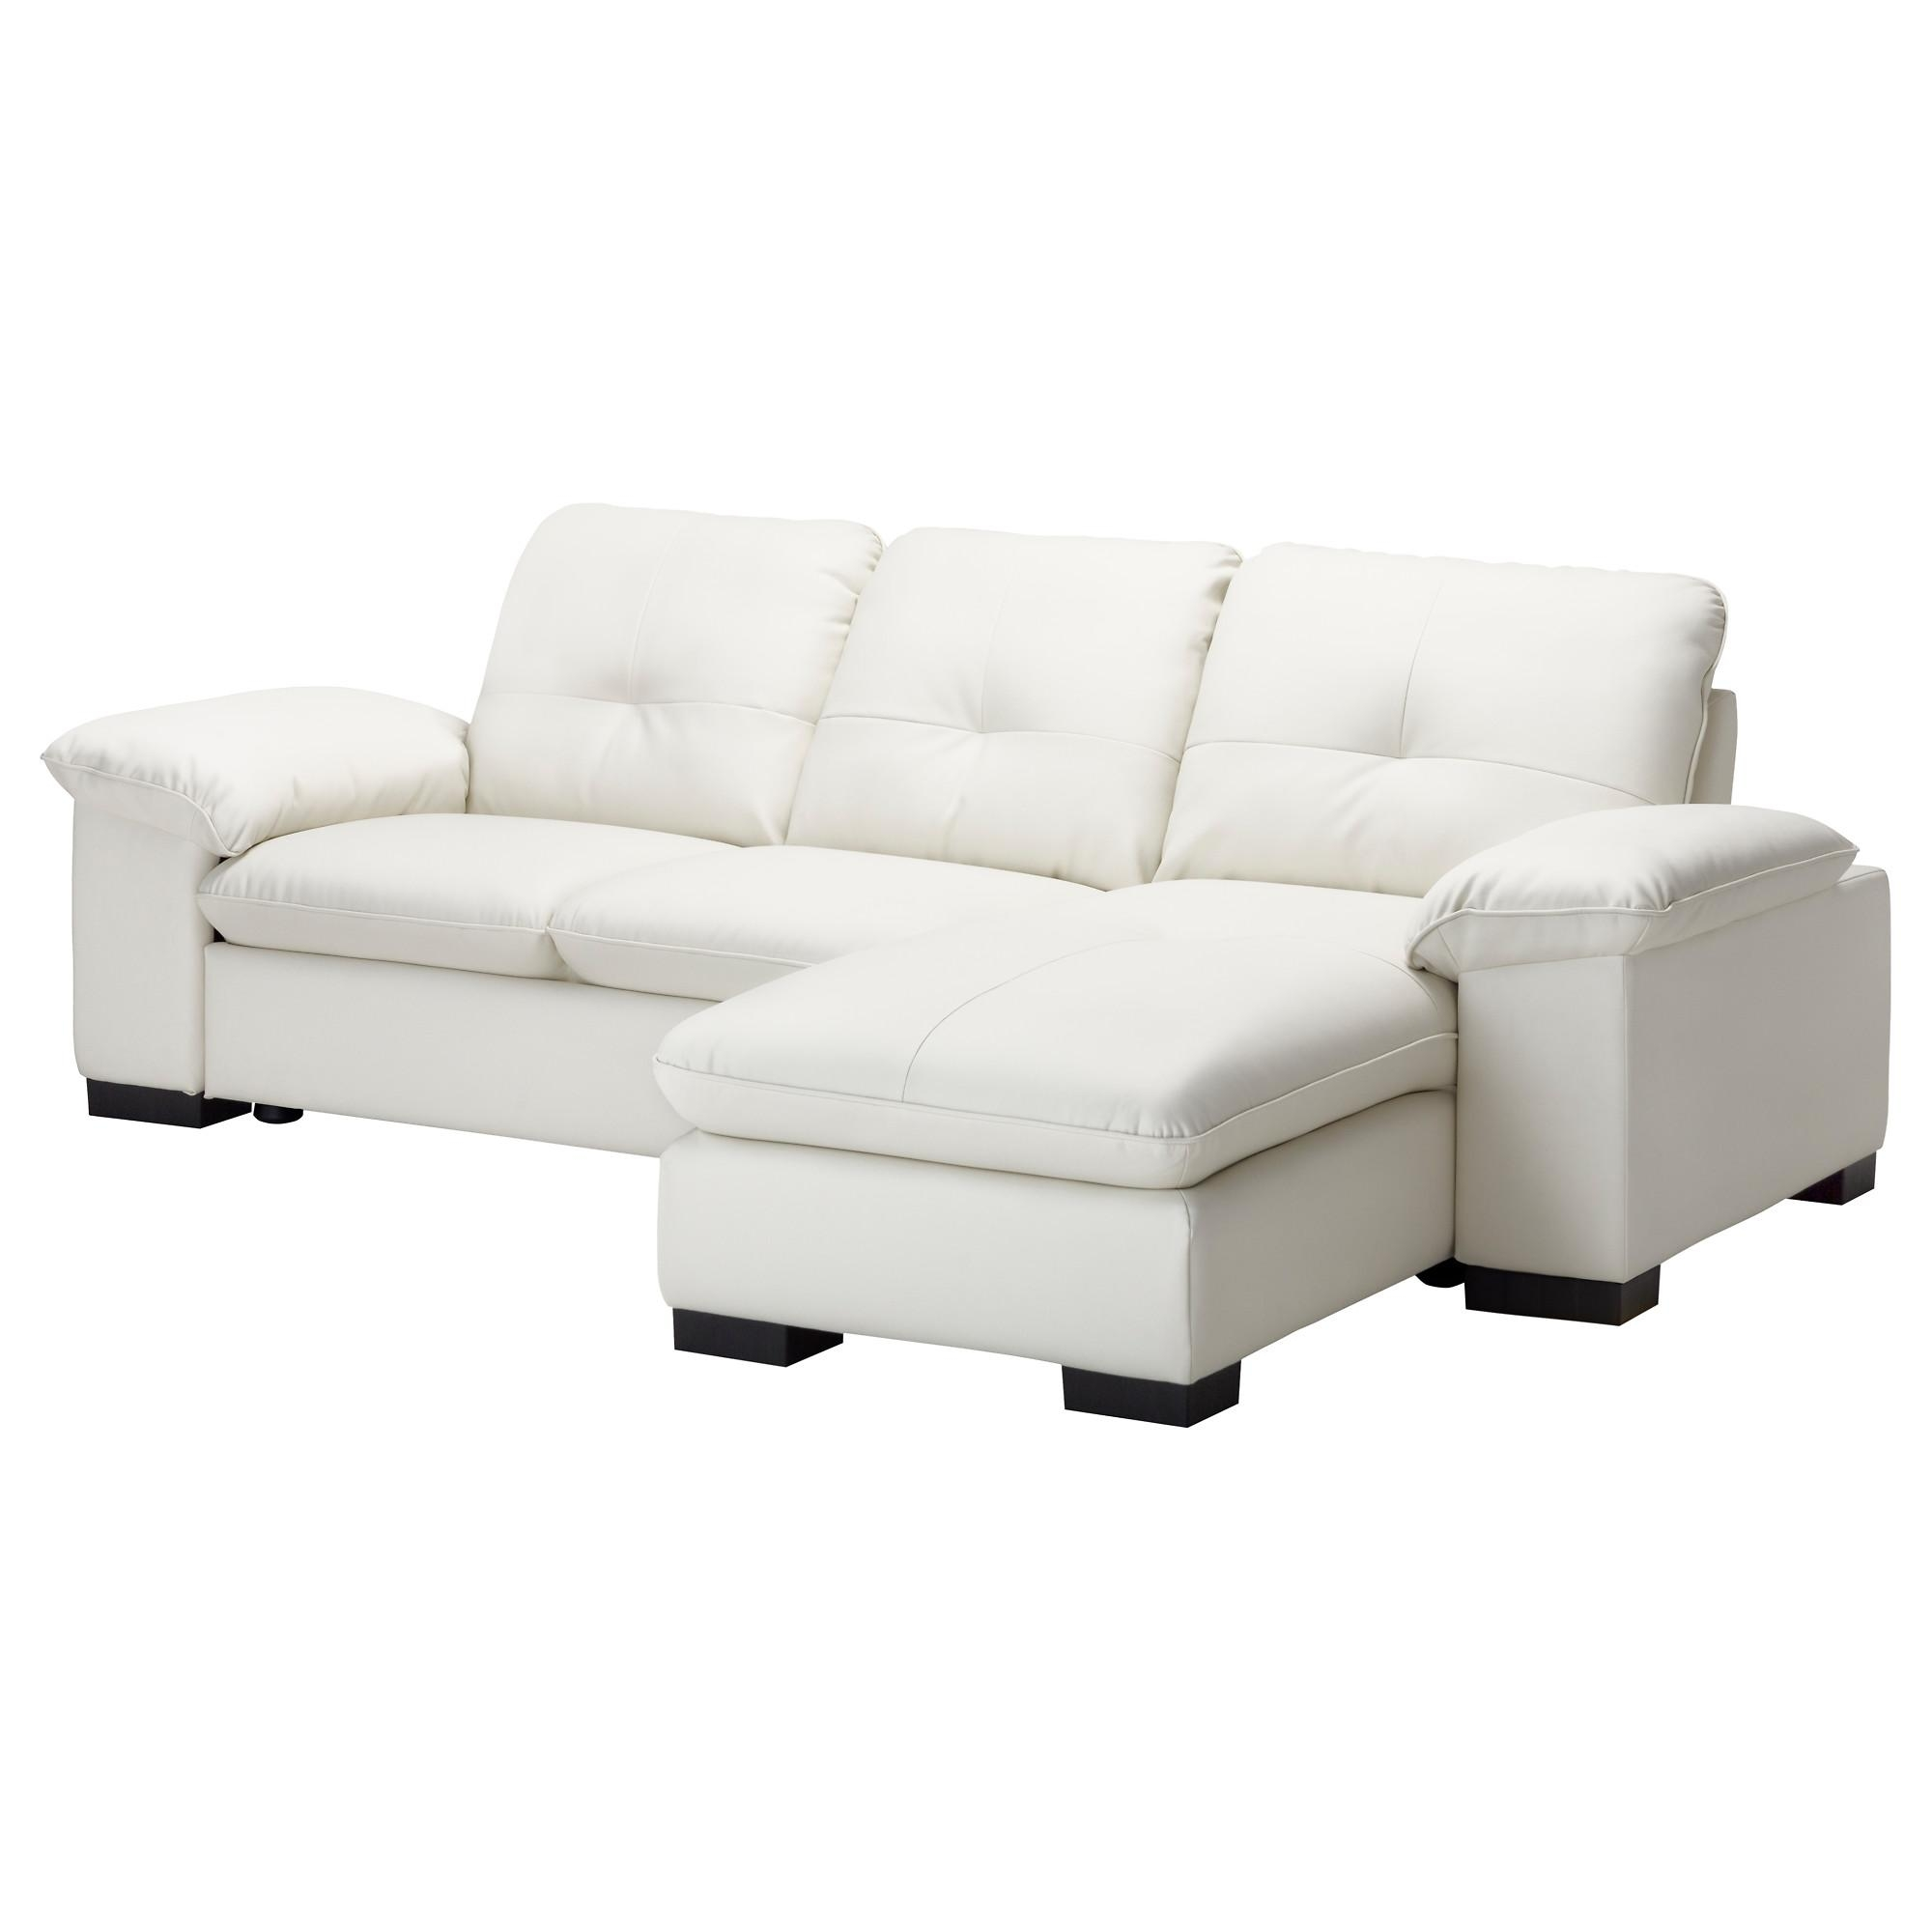 20 photos ikea chaise lounge sofa sofa ideas for 2 seater sofa with chaise